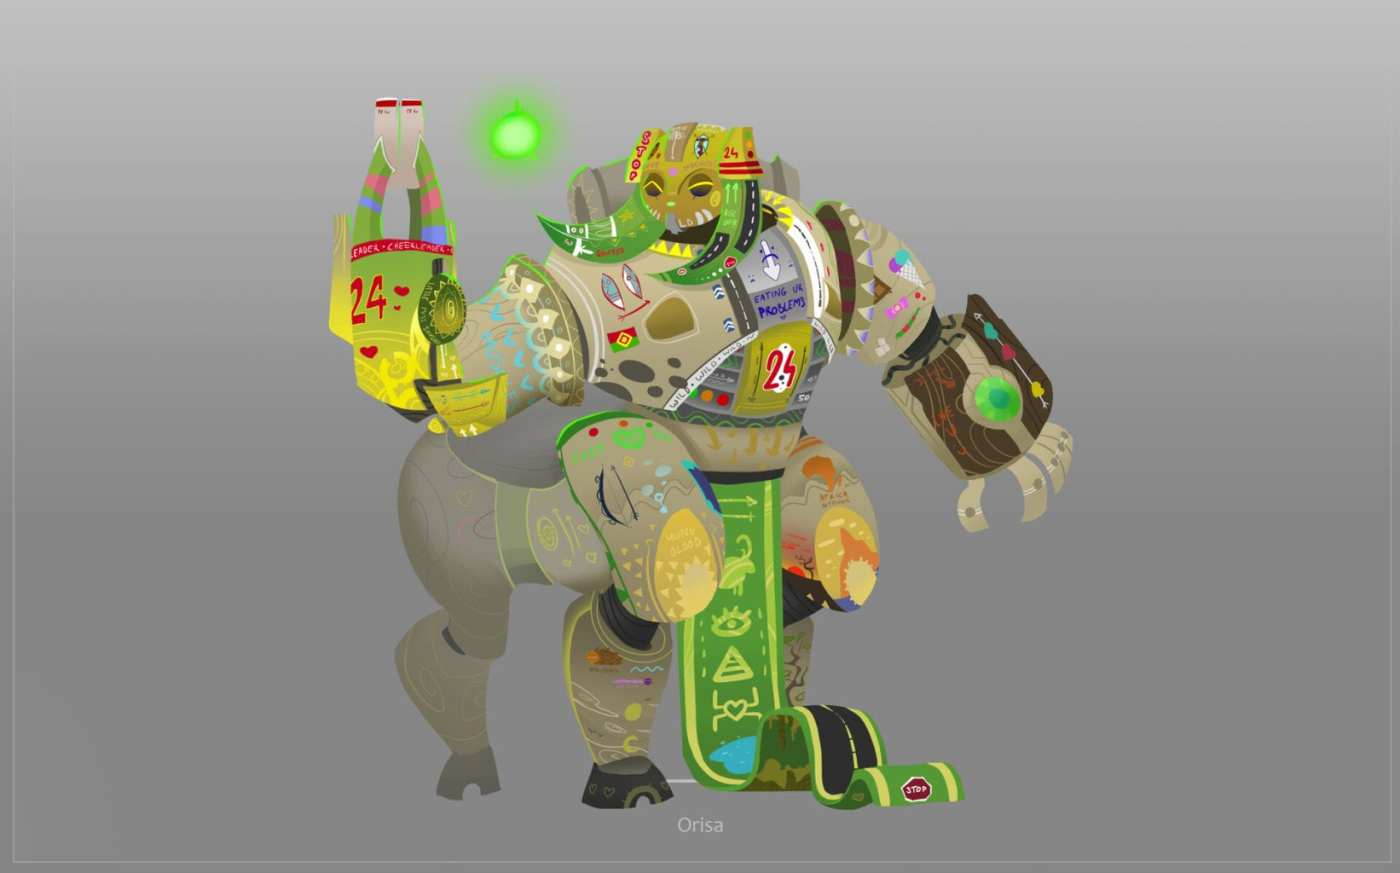 orisa overwatch art